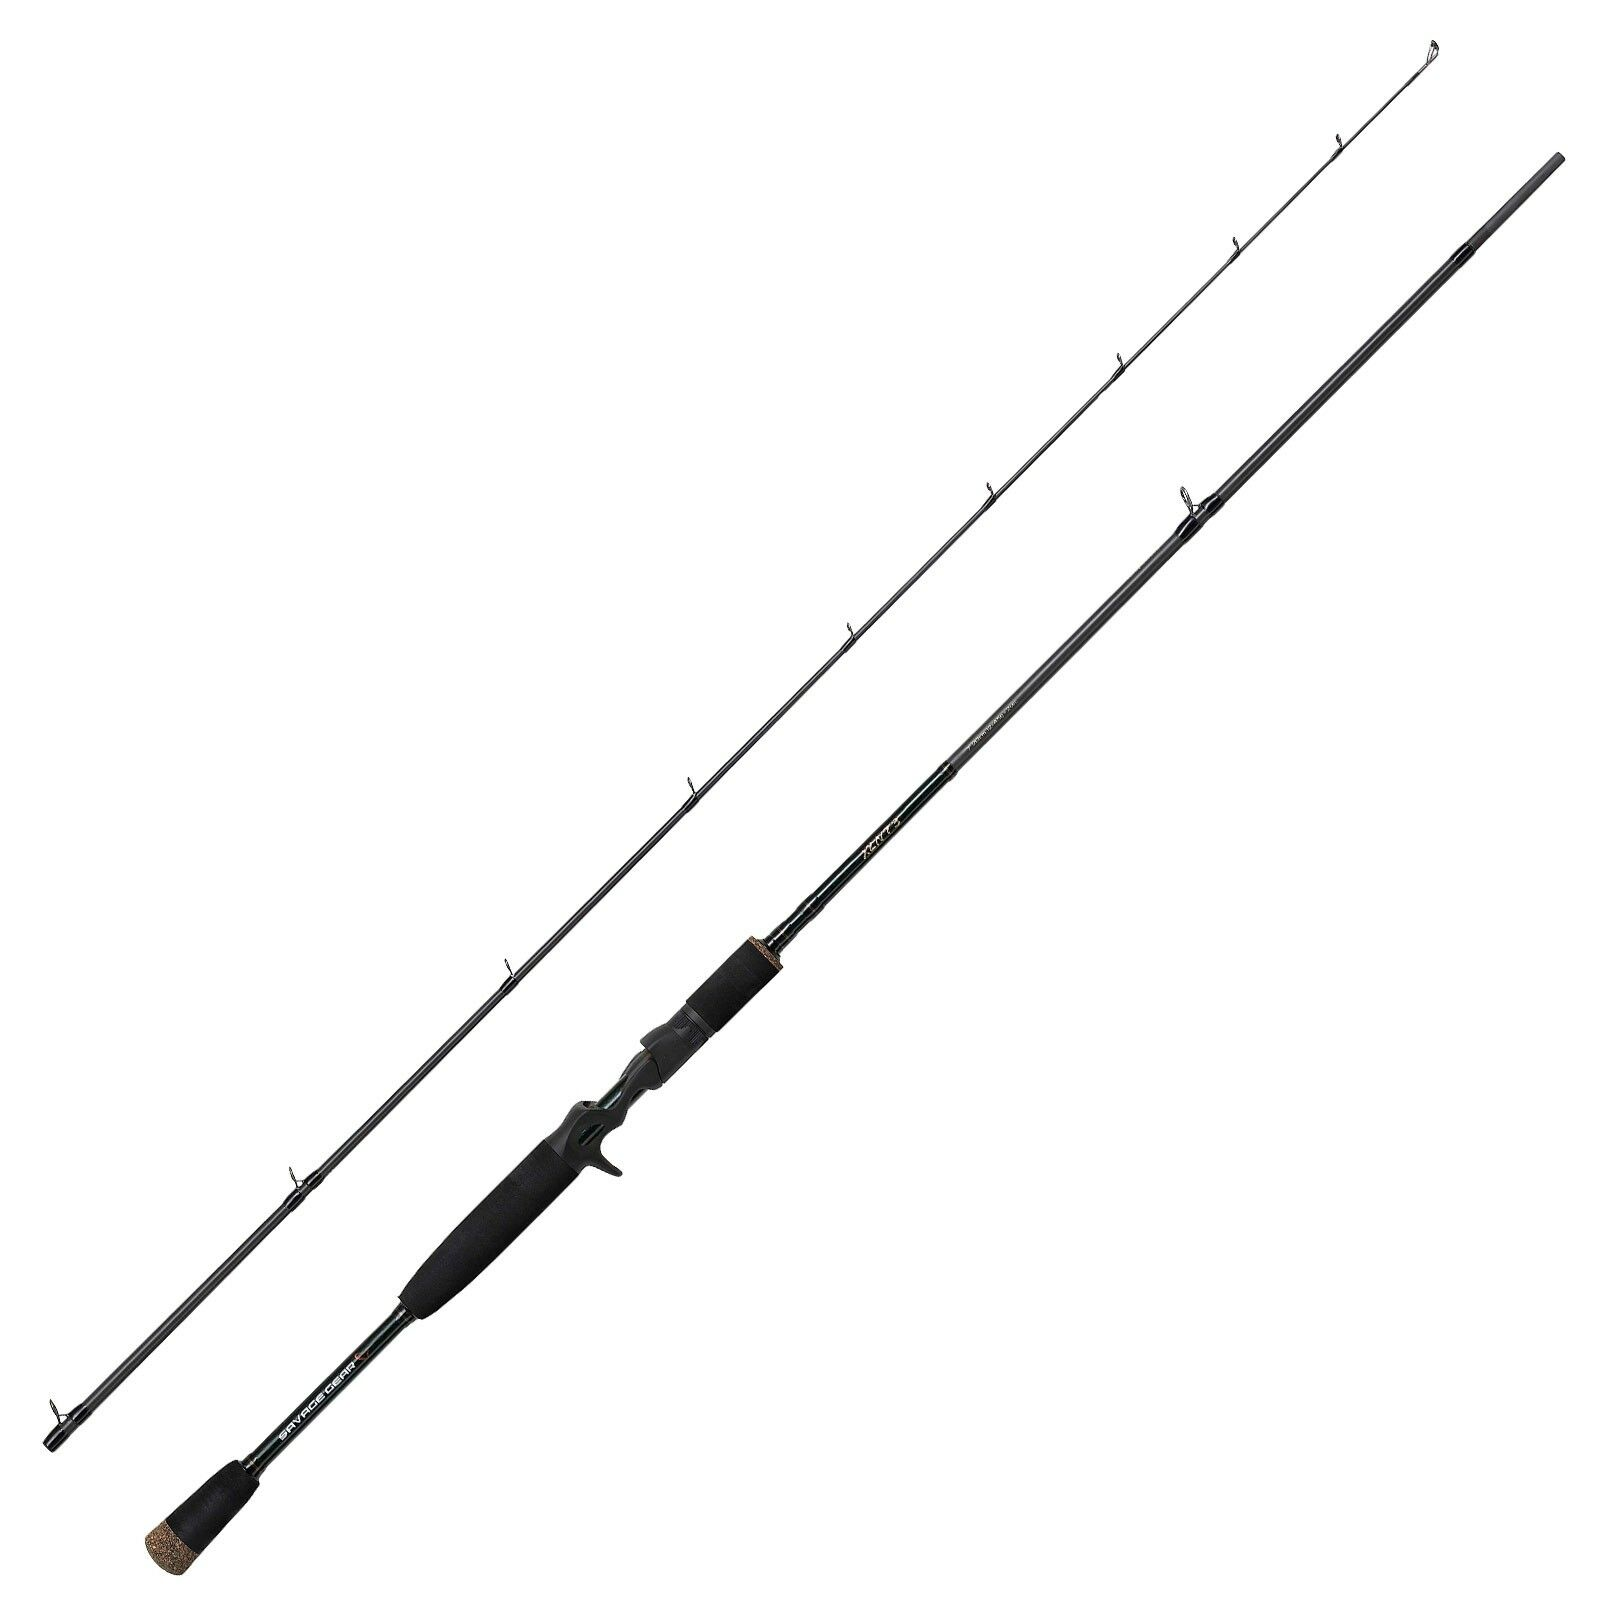 Savage Gear Angelrute Baitcastrute – XLNT3 Trigger 7ft 2,13m 100g 2 teilig